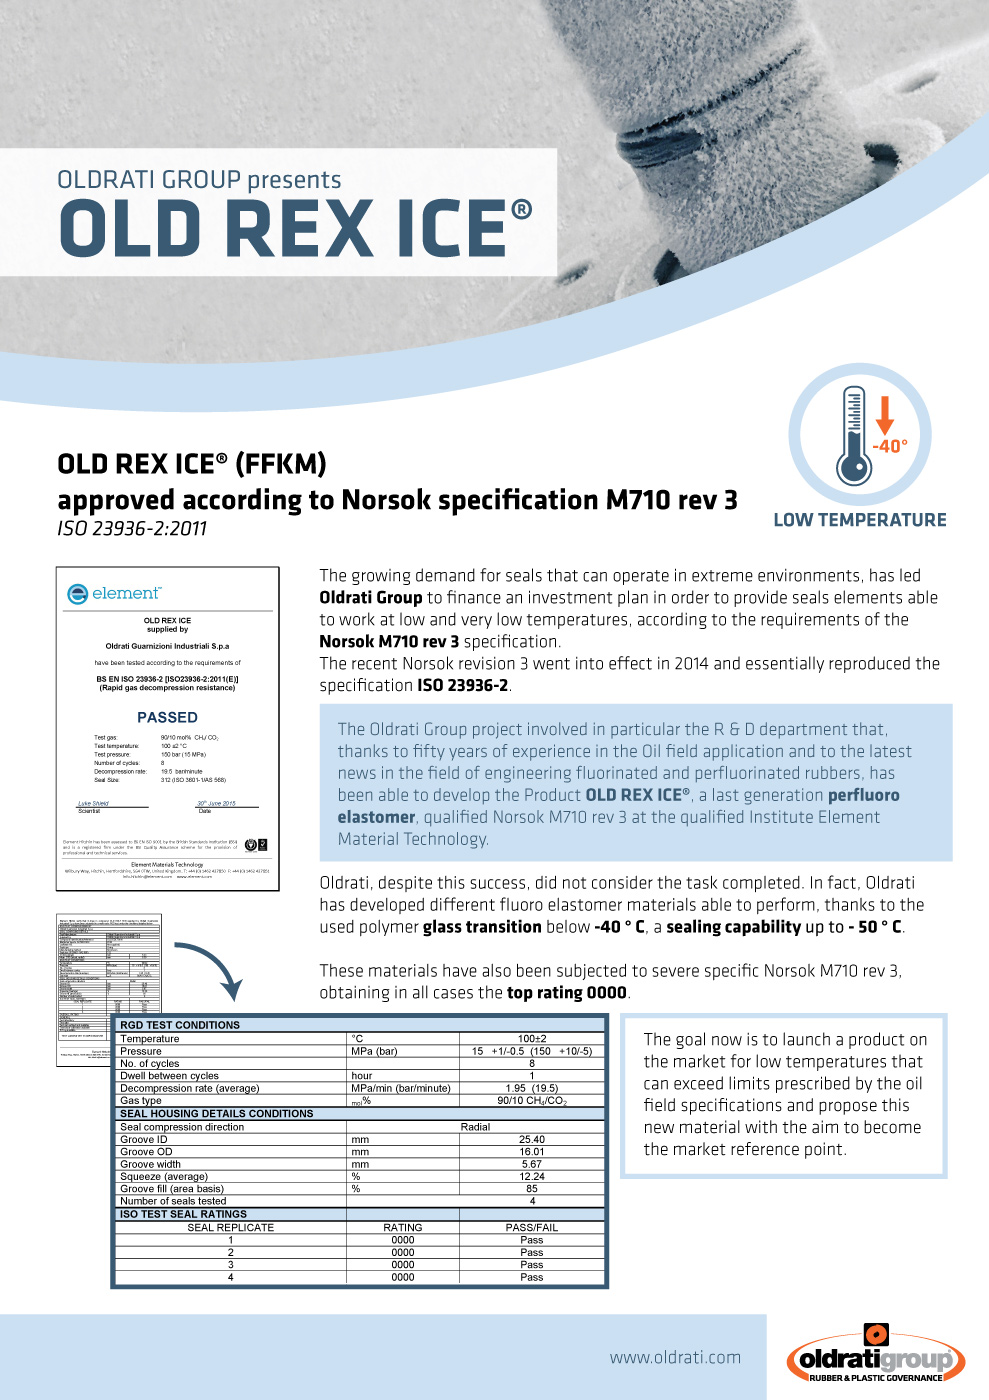 Oldrati Group Presents OLD REX ICE® (FFKM)